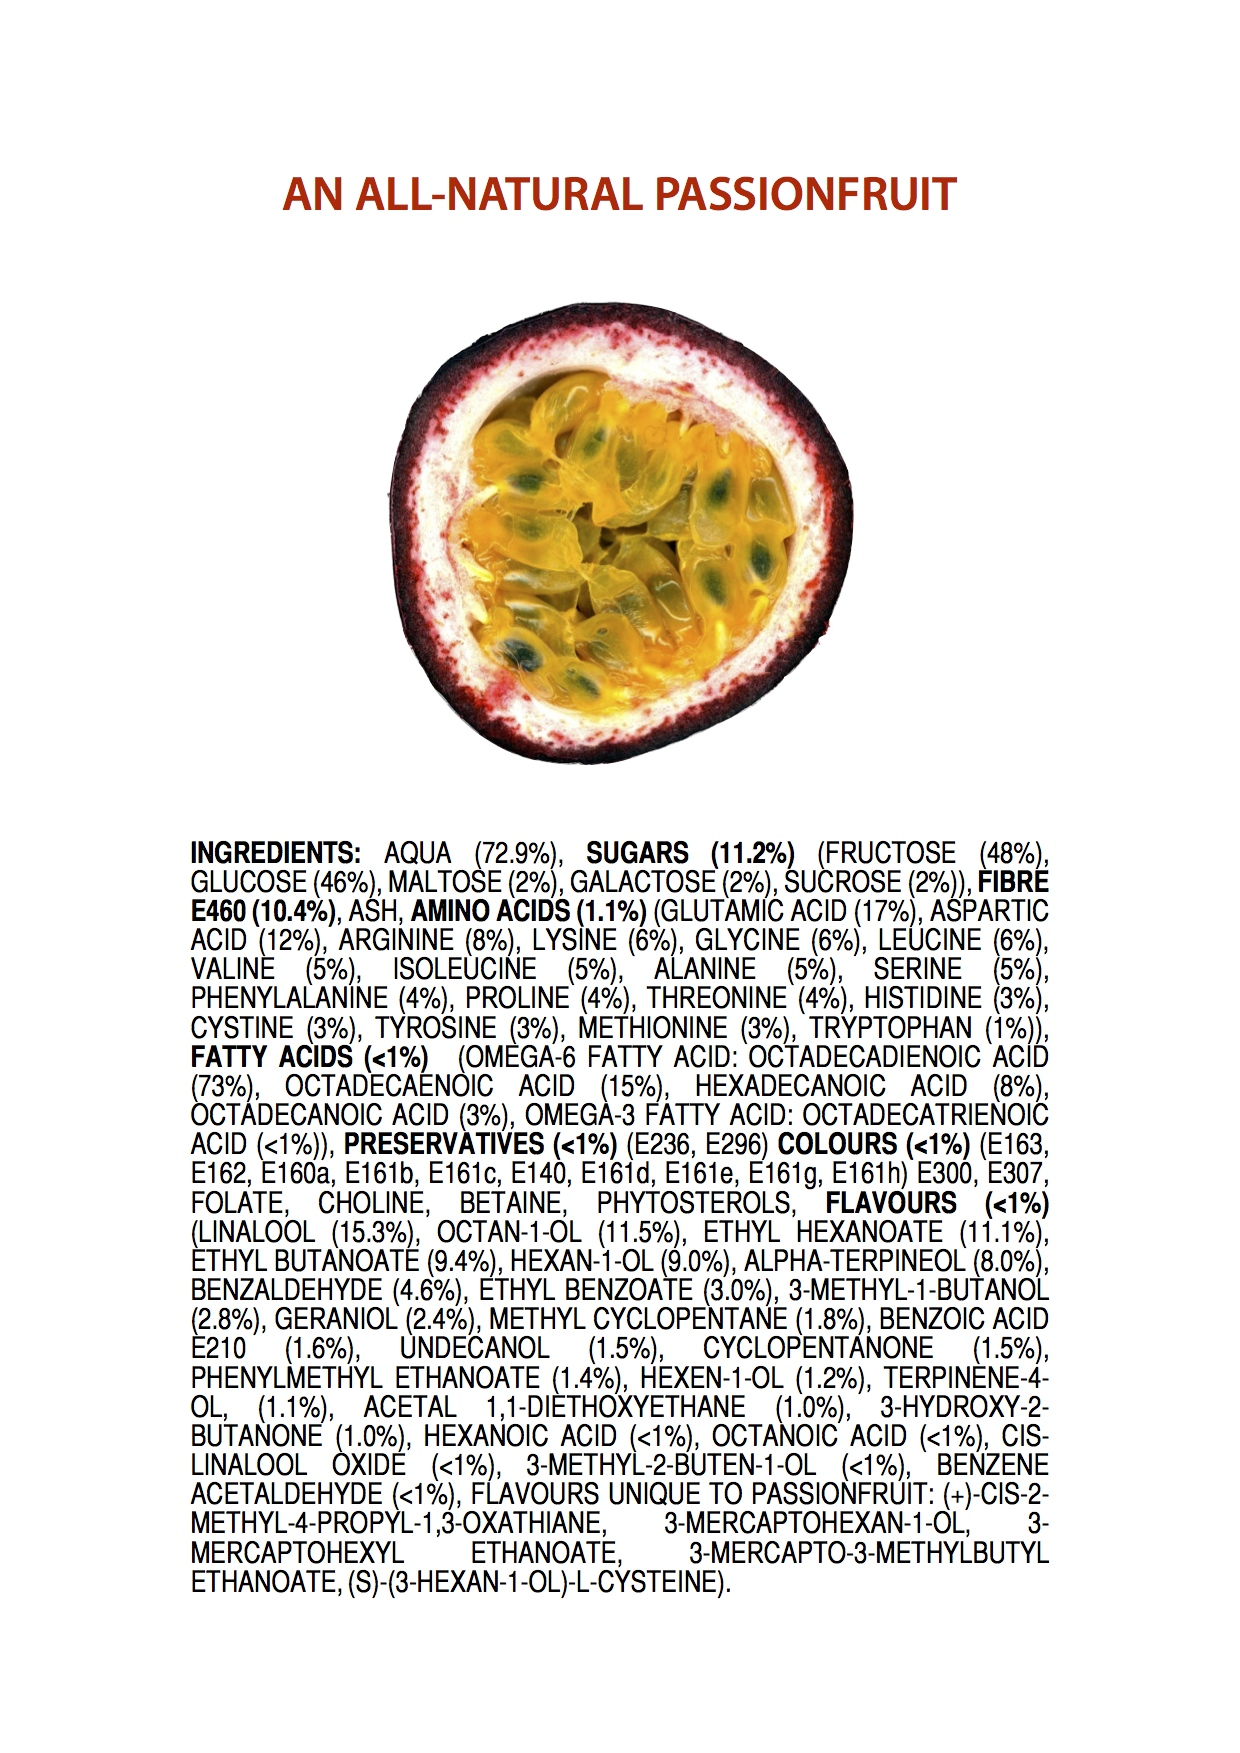 Tout est chimique... Ingredients-of-an-all-natural-passionfruit-poster